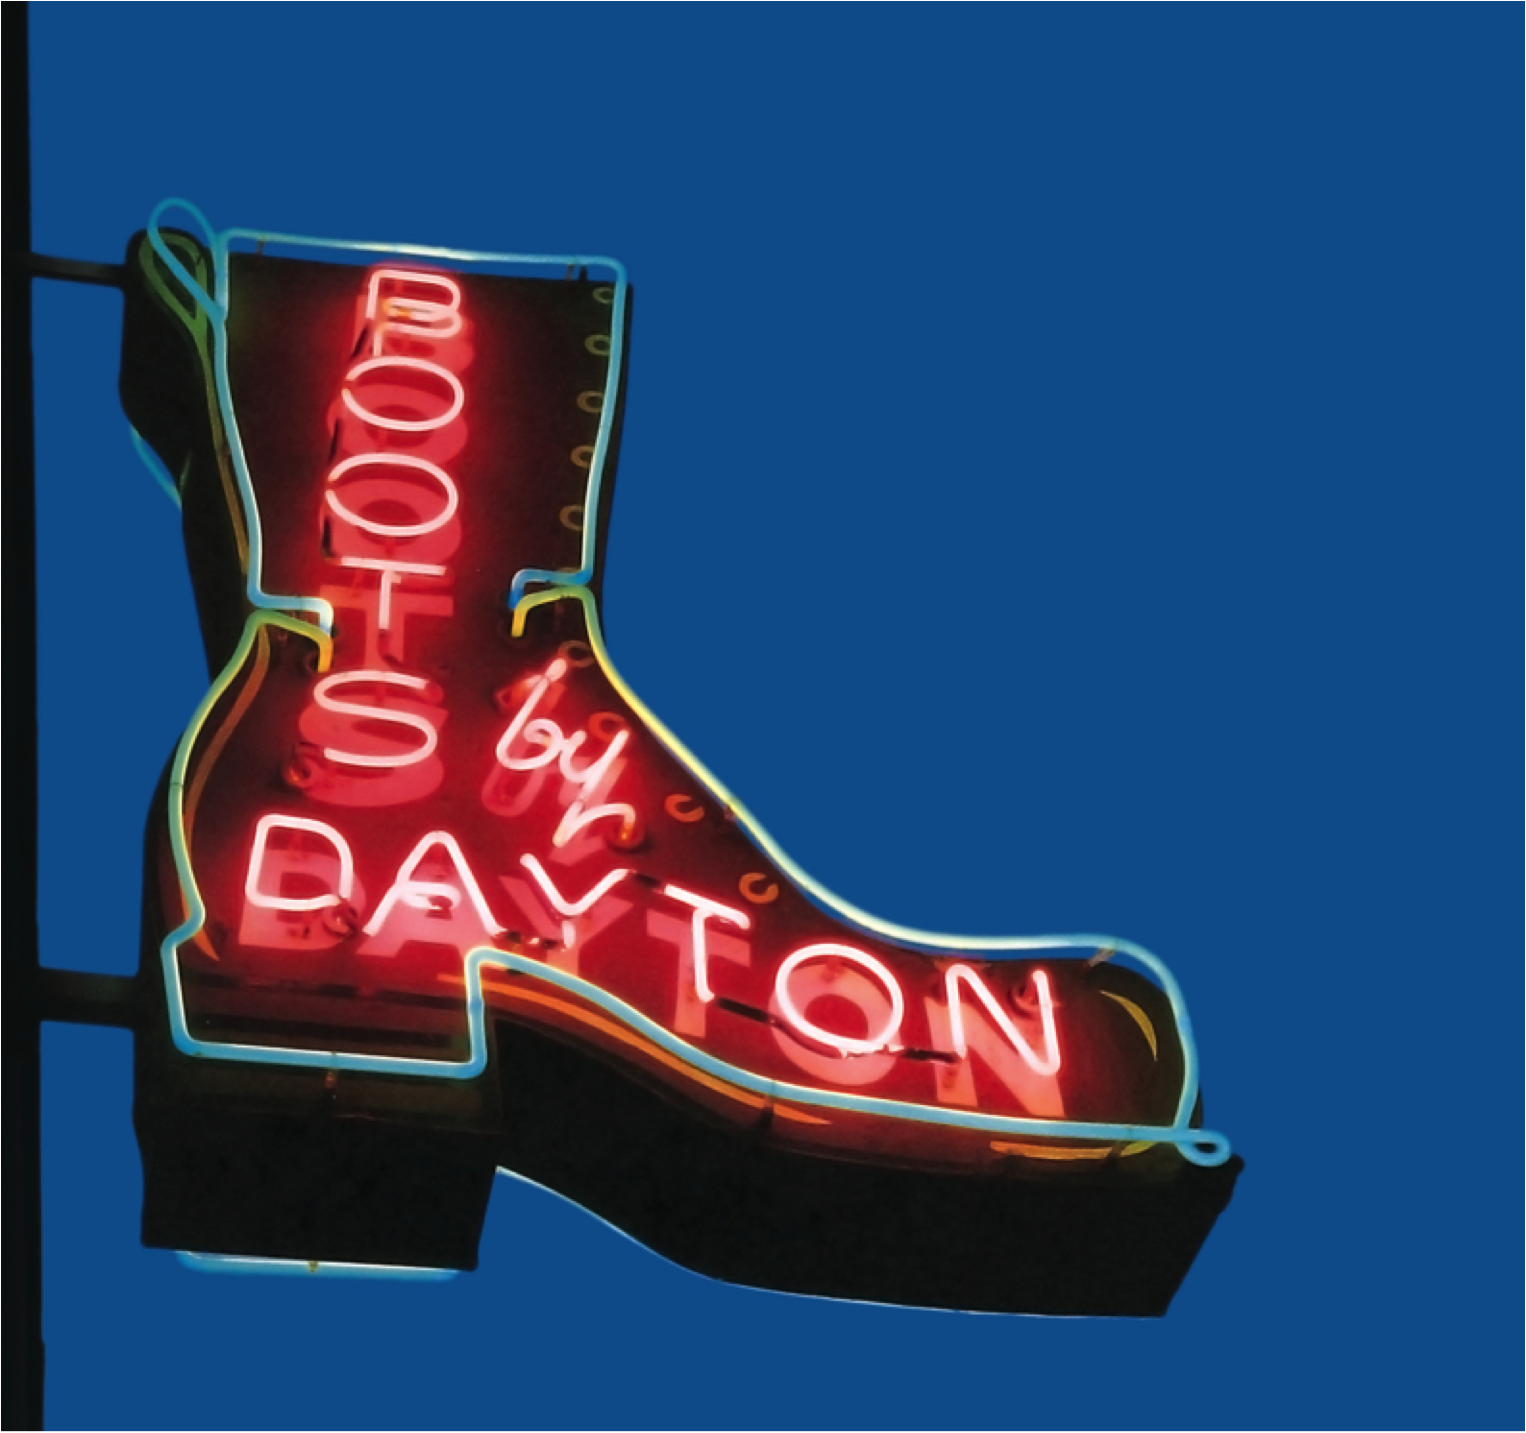 Dayton Boots In Vancouver, BC, Canada